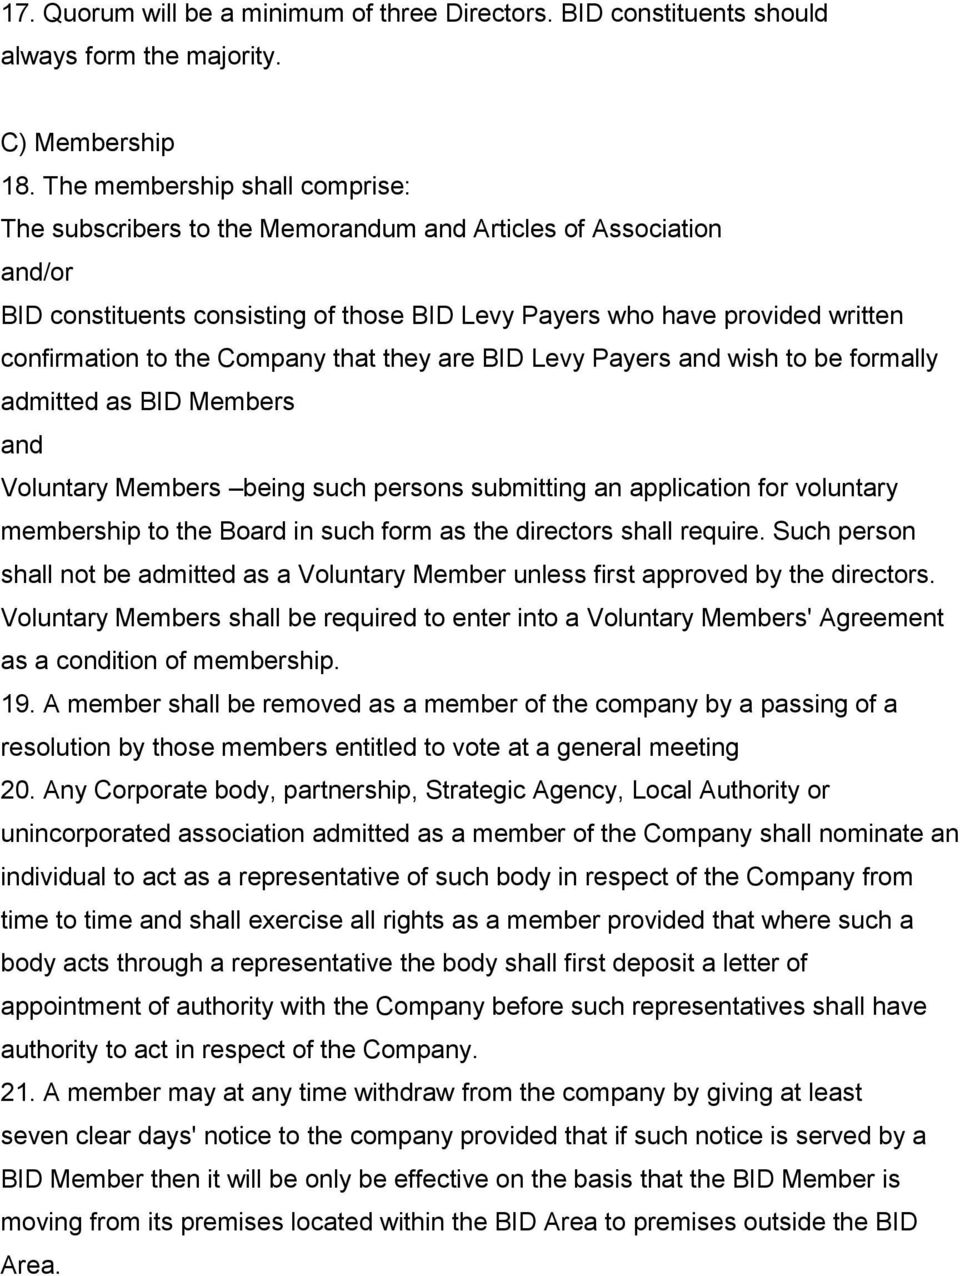 Company that they are BID Levy Payers and wish to be formally admitted as BID Members and Voluntary Members being such persons submitting an application for voluntary membership to the Board in such